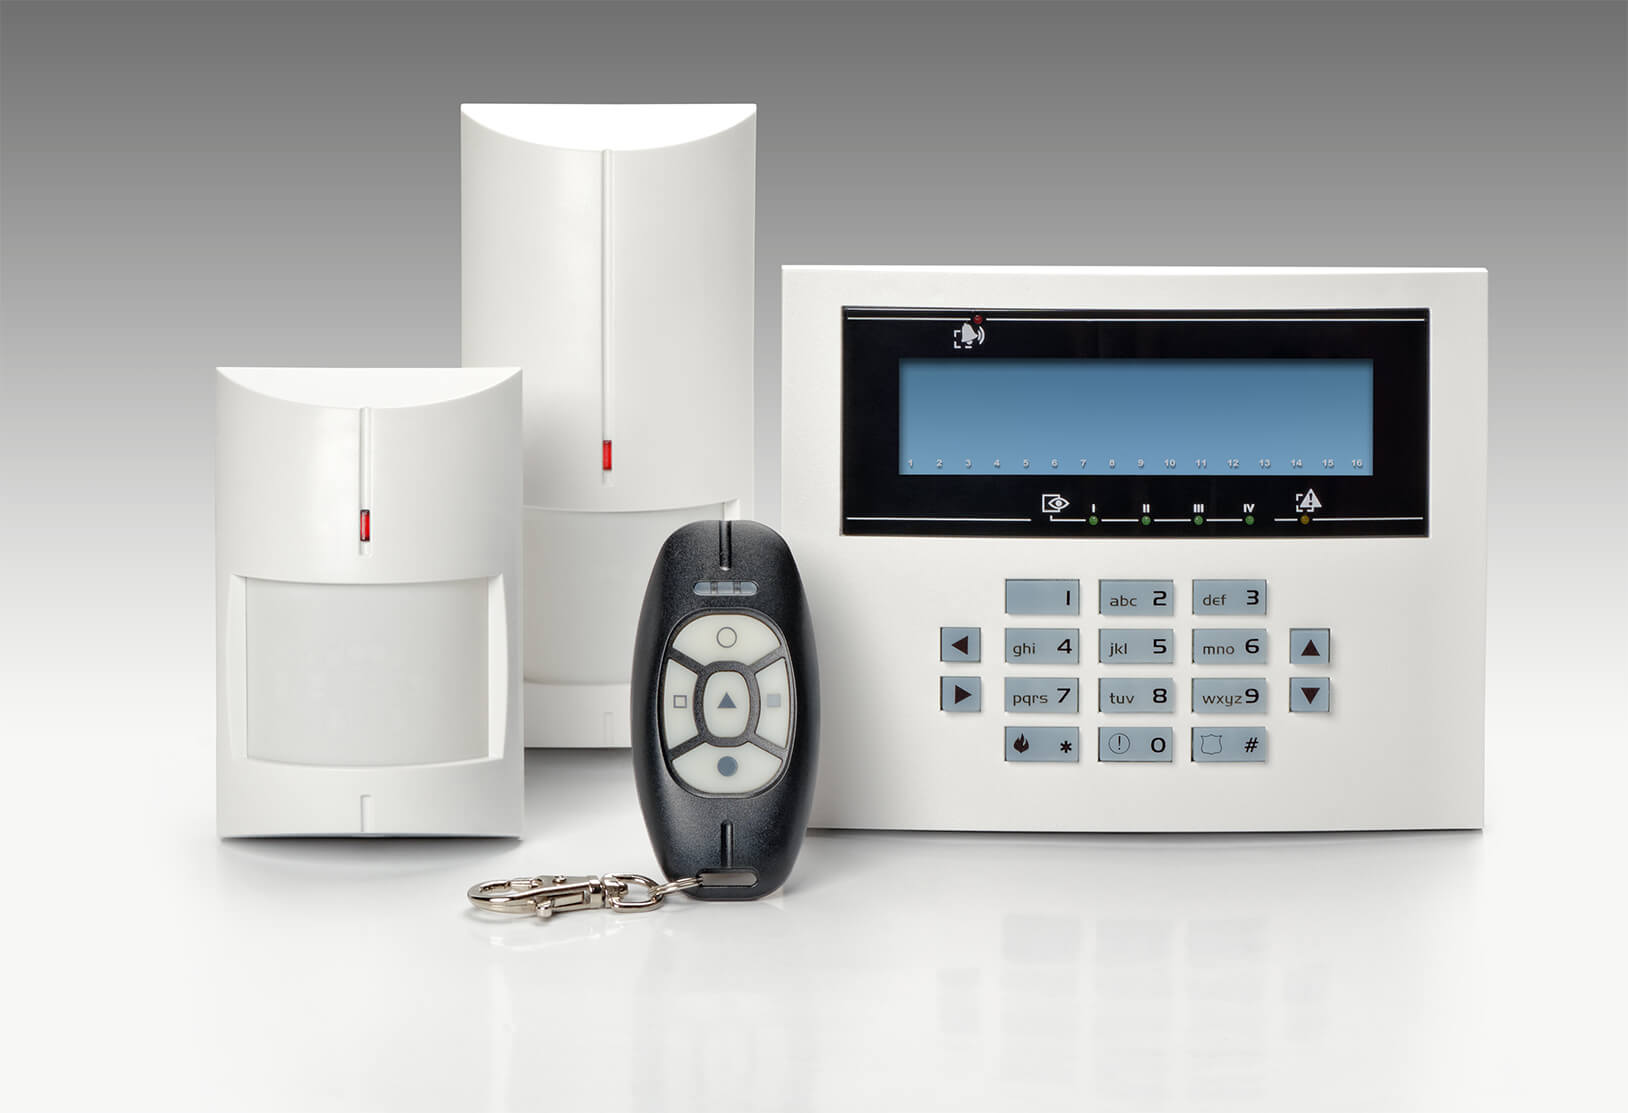 Business & Residential NACOSS Approved Burglar Alarms In Islington N4 - Local Islington N4 security company.Call 02078872244 - Dedicated to Safety & Security. Companies, shops and homes ..